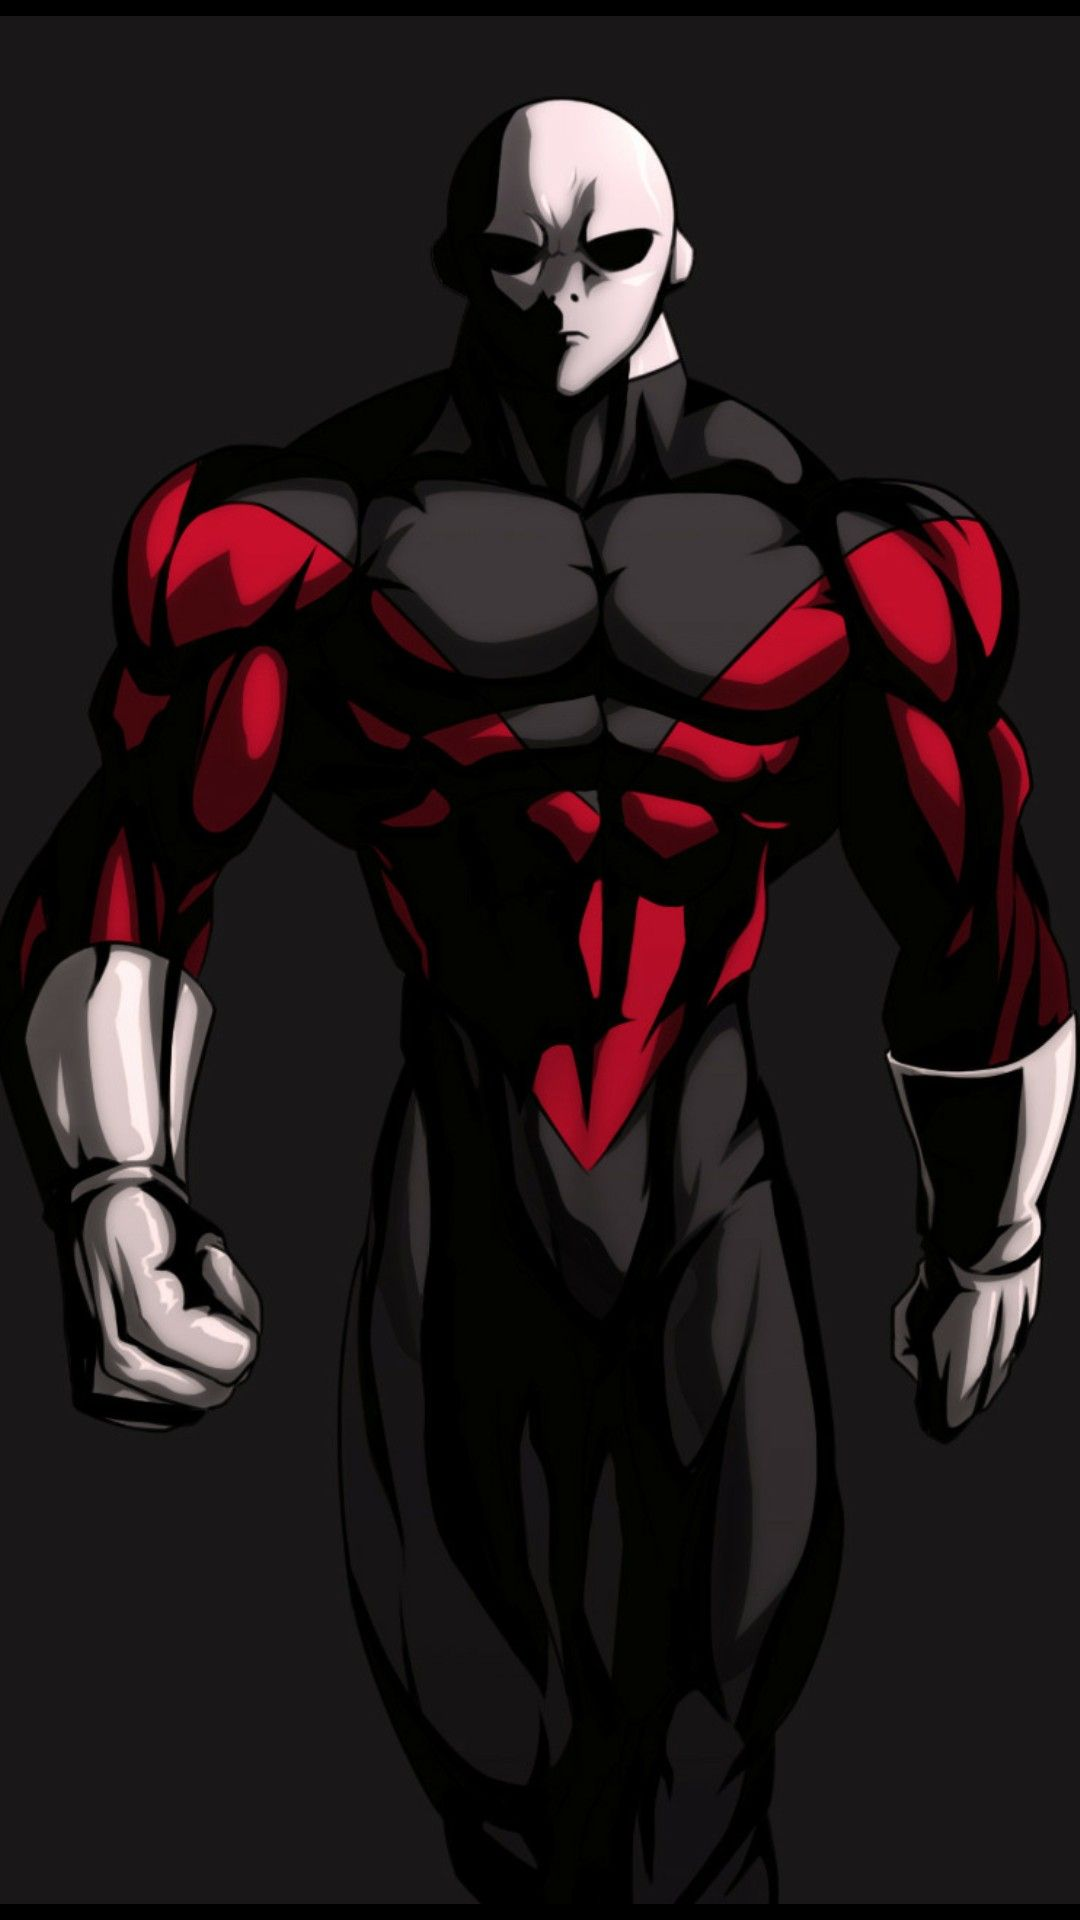 Dragon ball super, Jiren Art - ID: 112789 - Art Abyss